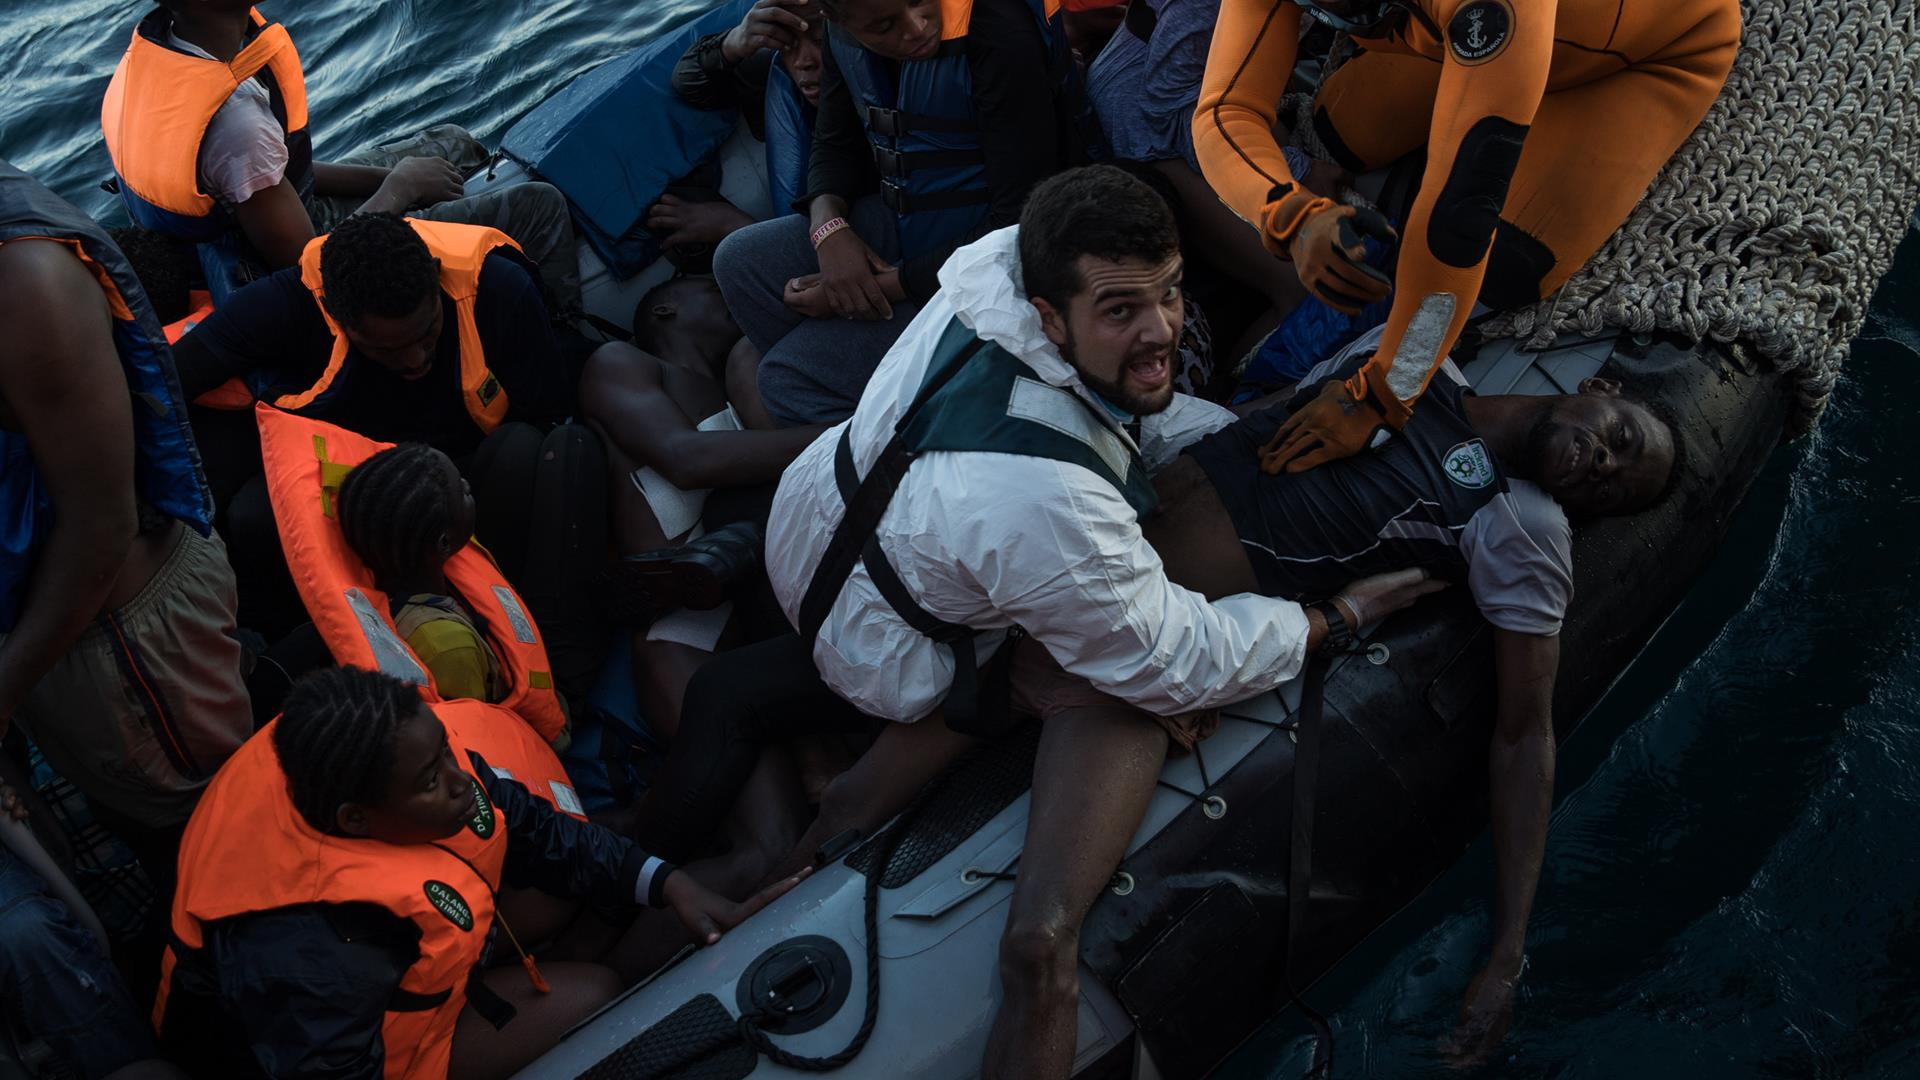 Migranti ONG Moas Dan Kitwood Getty